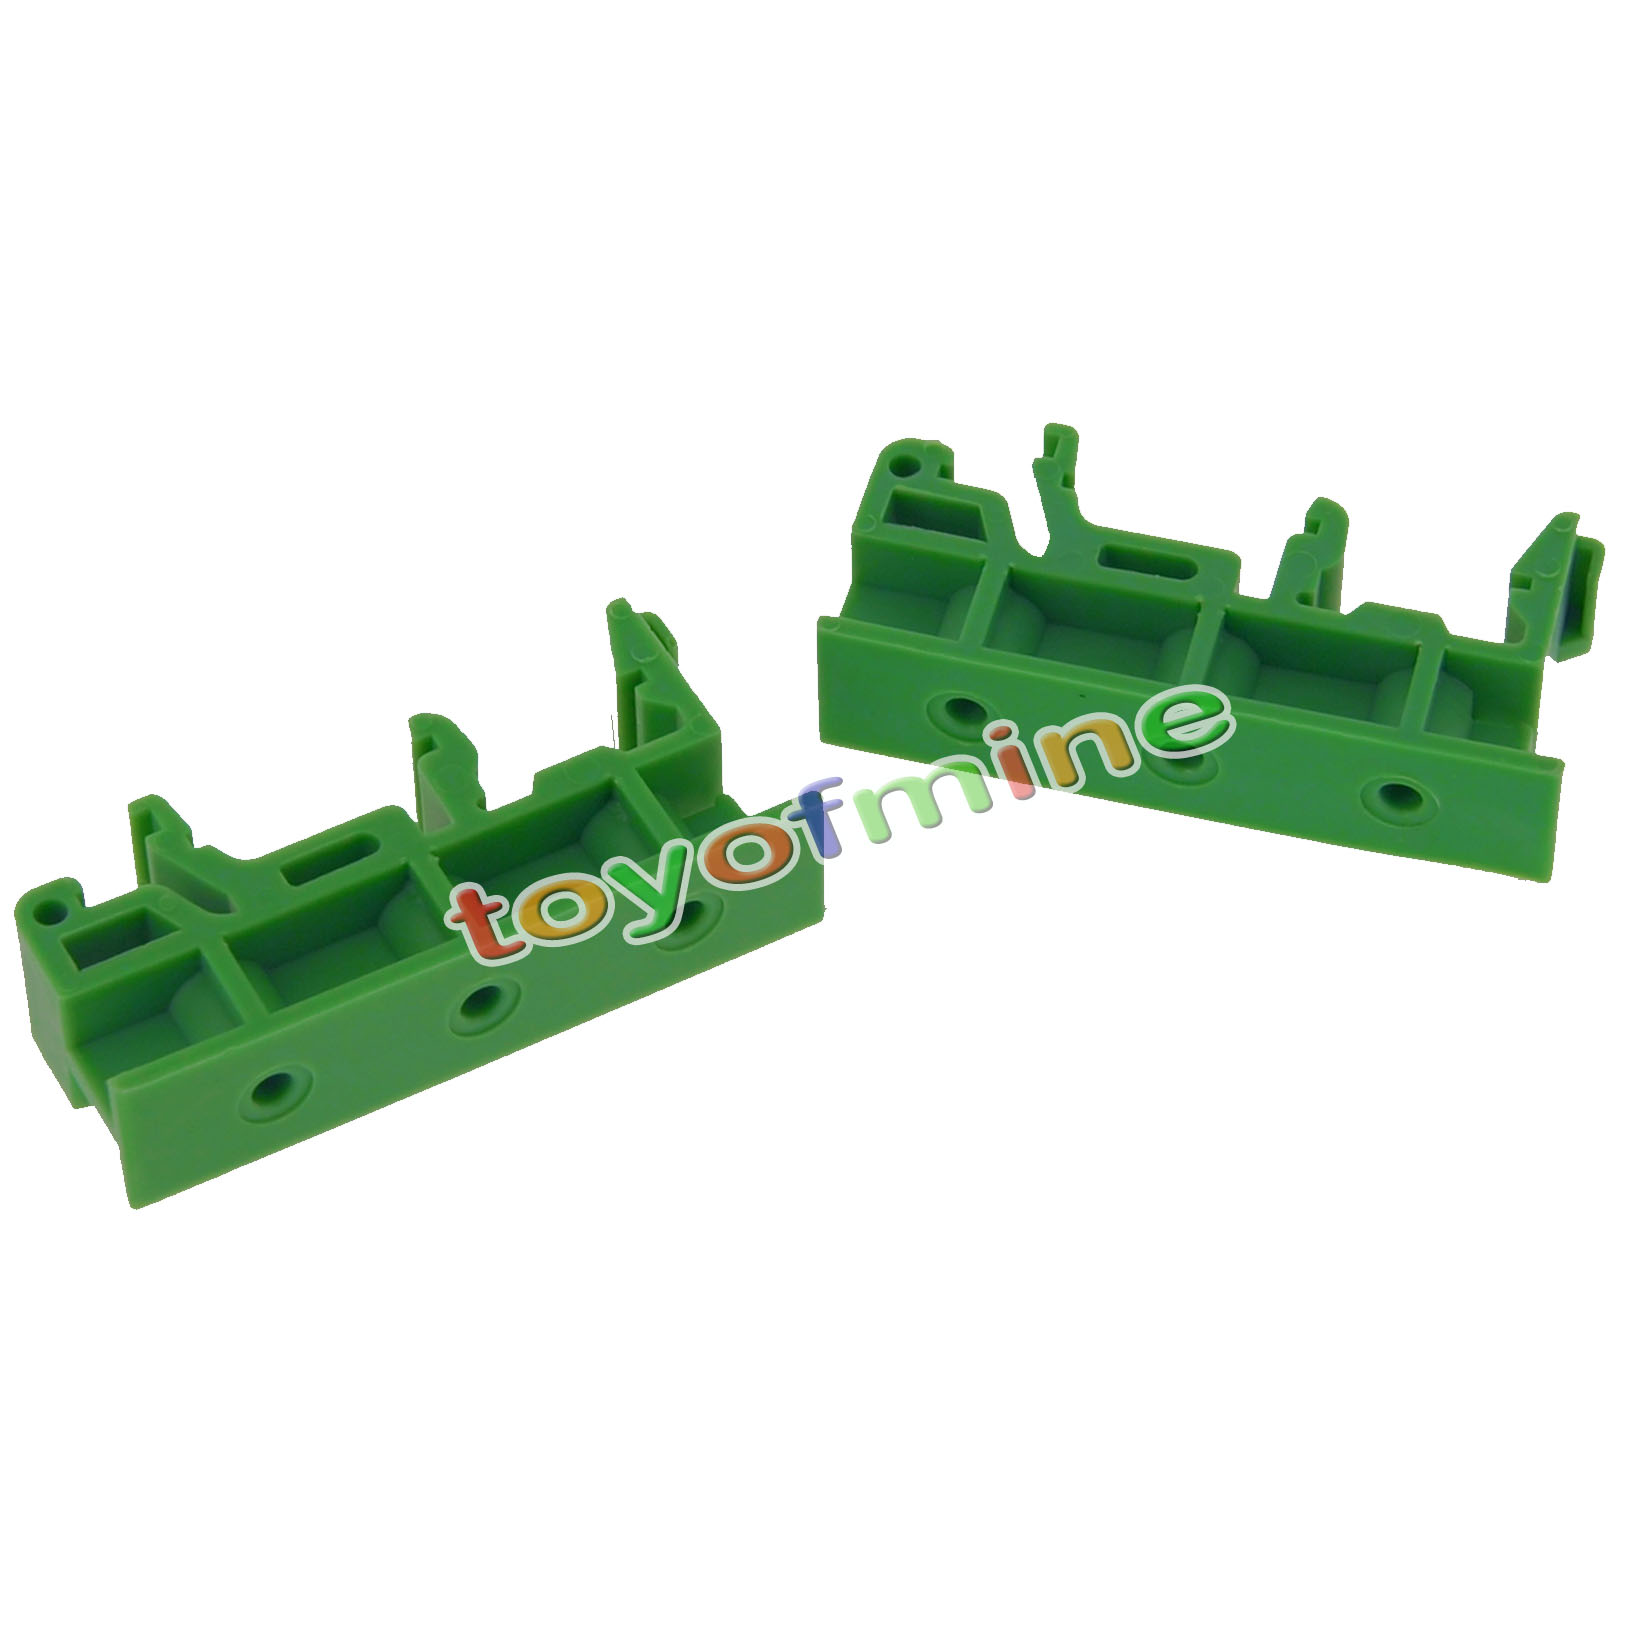 Pcb Circuit Board Mounting Bracket For Din C45 Rail Mounting Simple